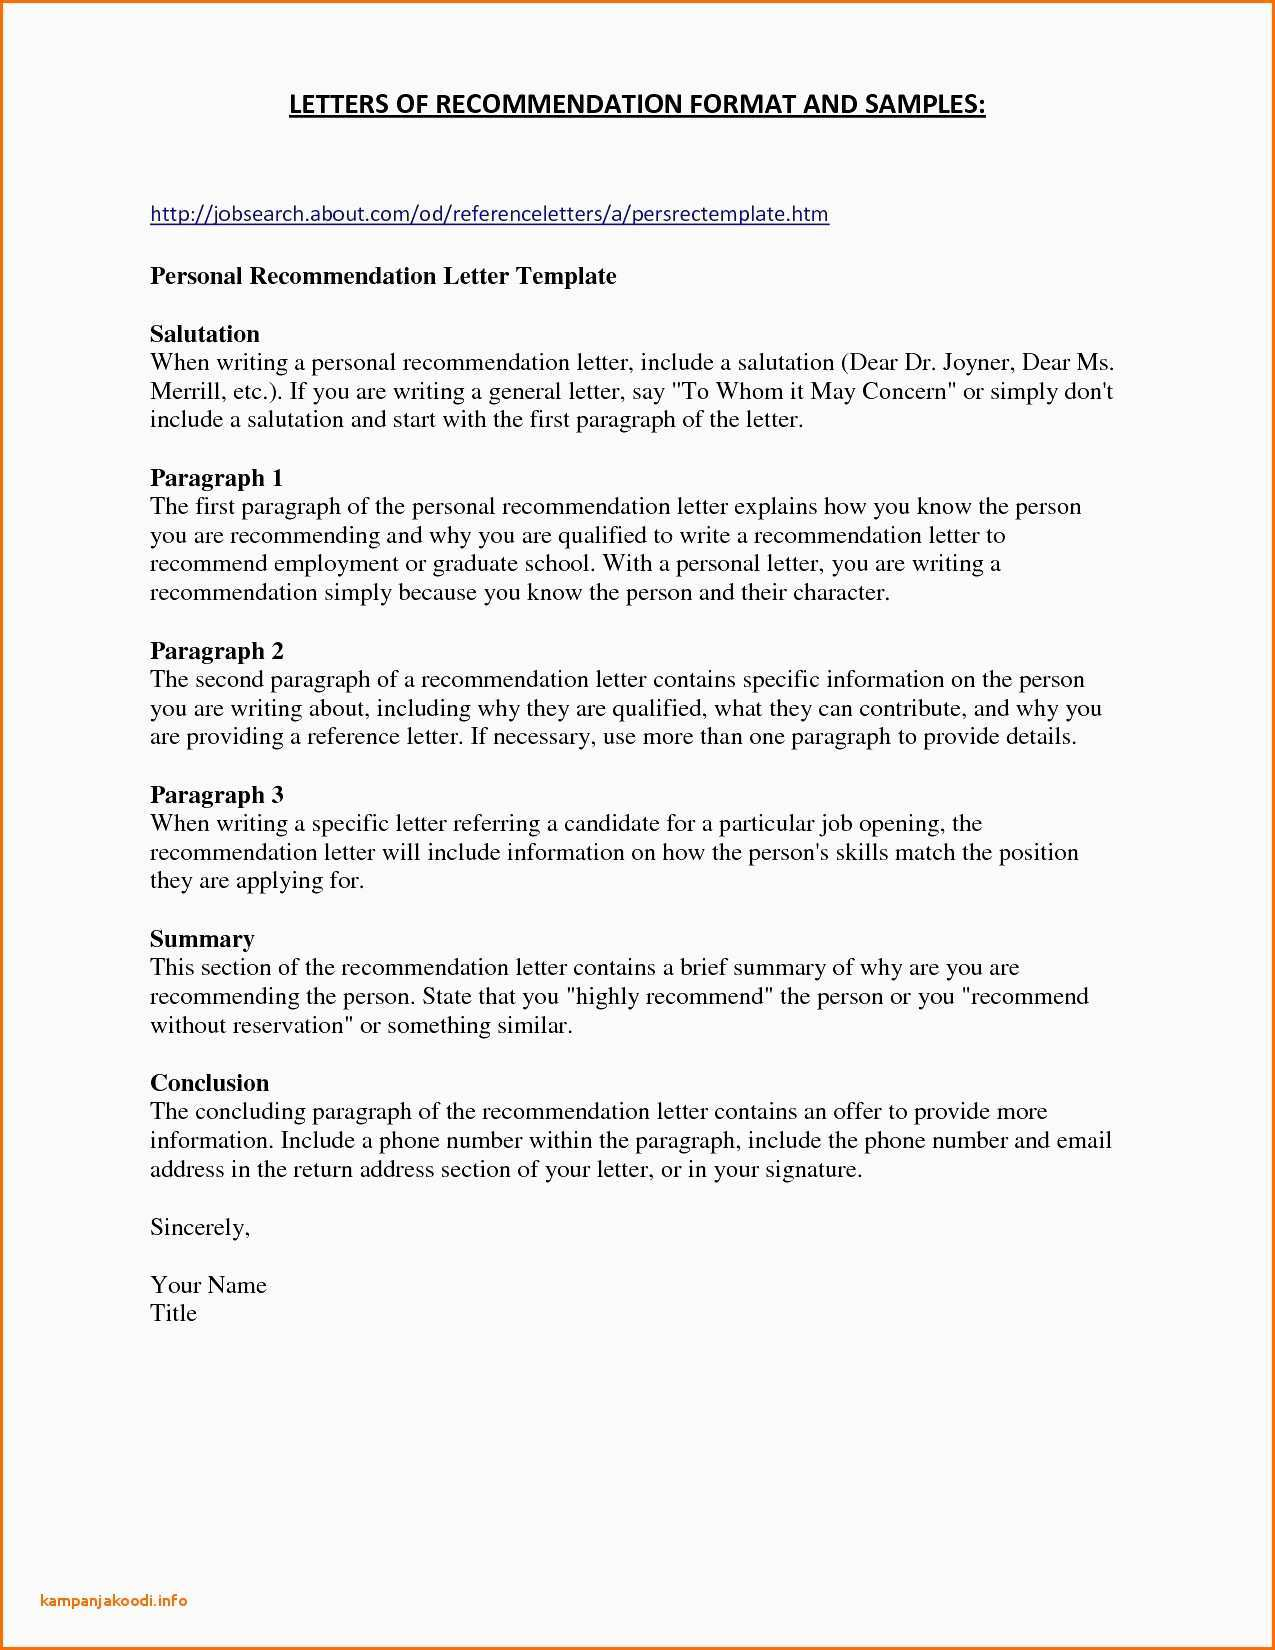 Free Resume Printing - Reference Sheet Resume Template Microsoft Free Resume Template Fresh